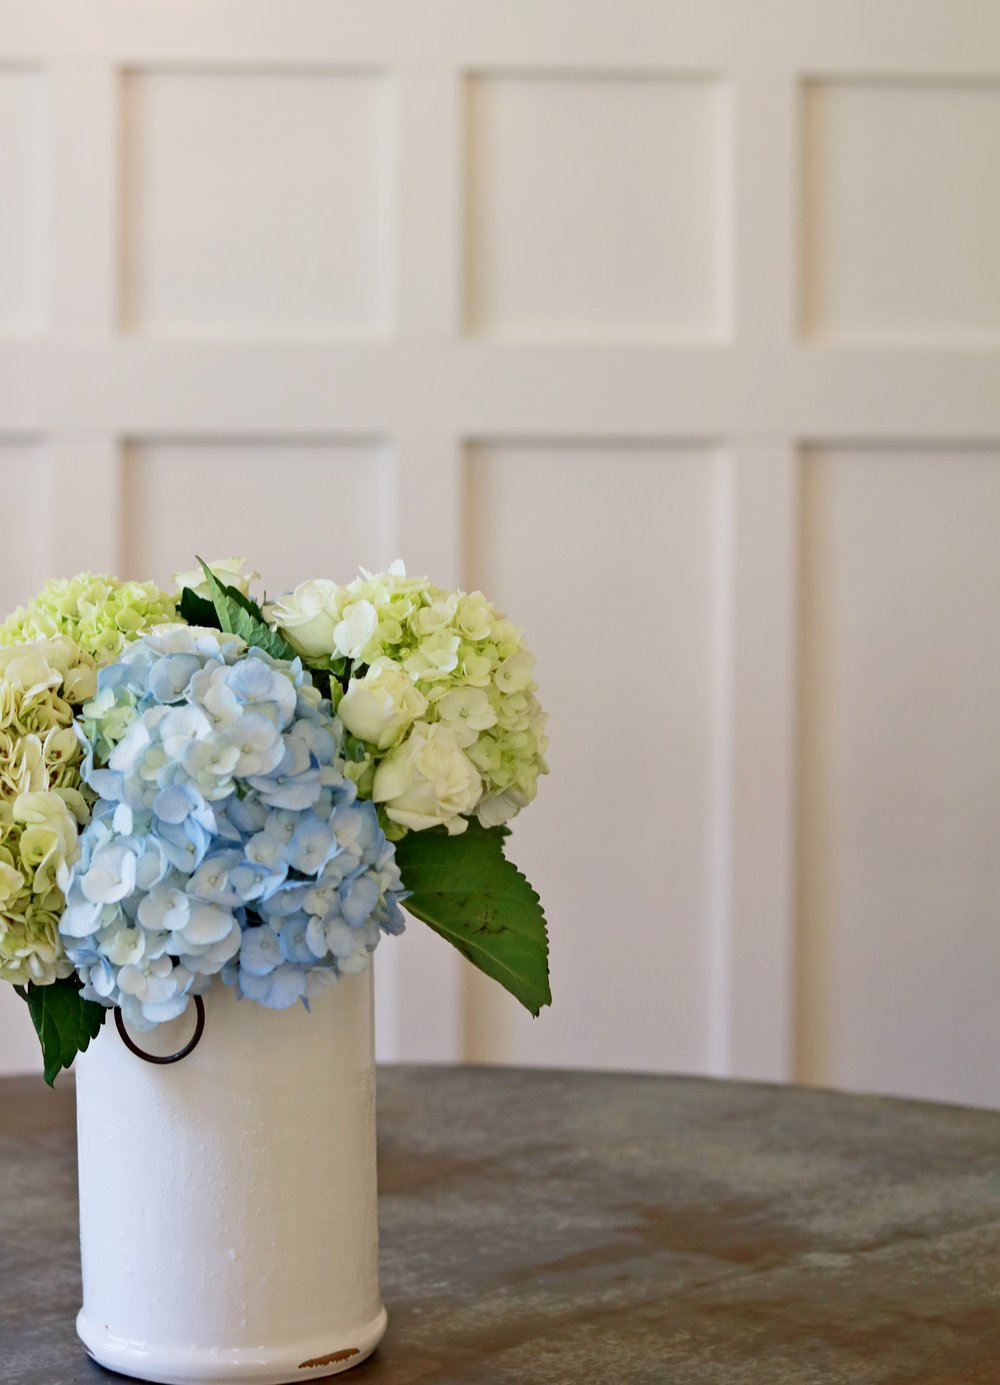 Prime Design Memphis, LLC - Dining Room, Craftsman Style Bungalow, White Wainscoting, hydrangeas